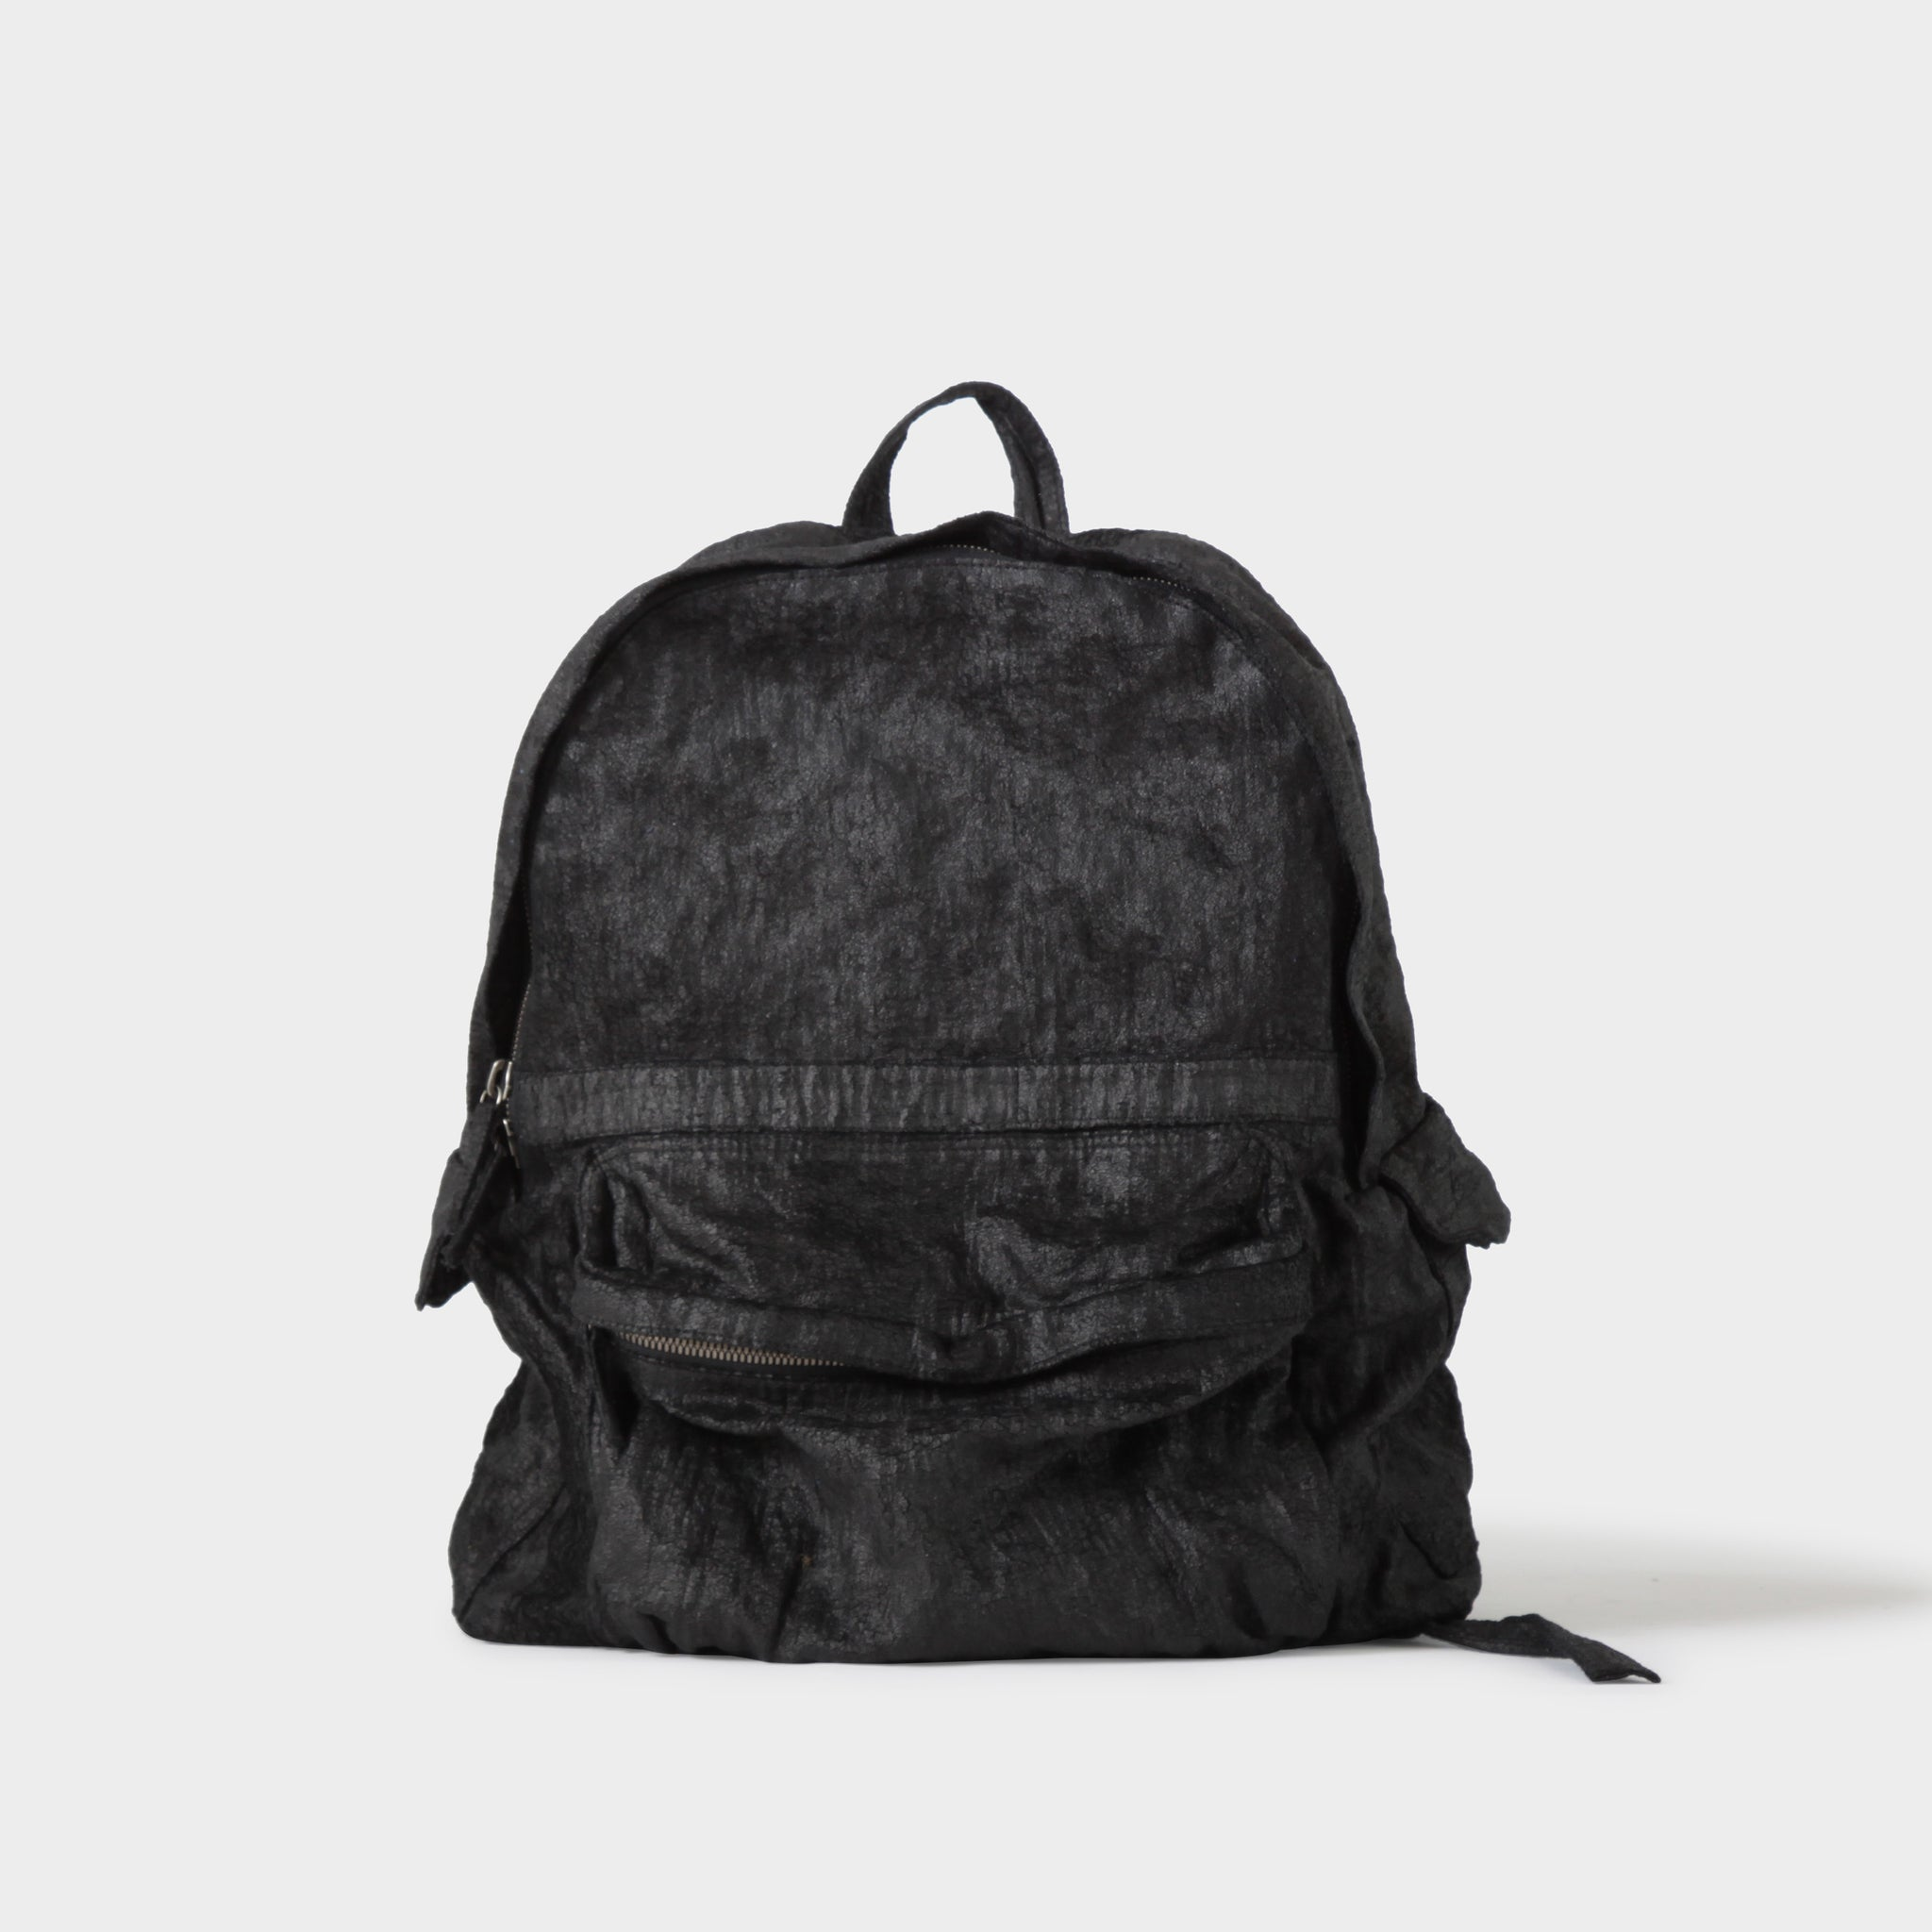 Ann Demeulemeester Blistered Velvet Daypack in Black